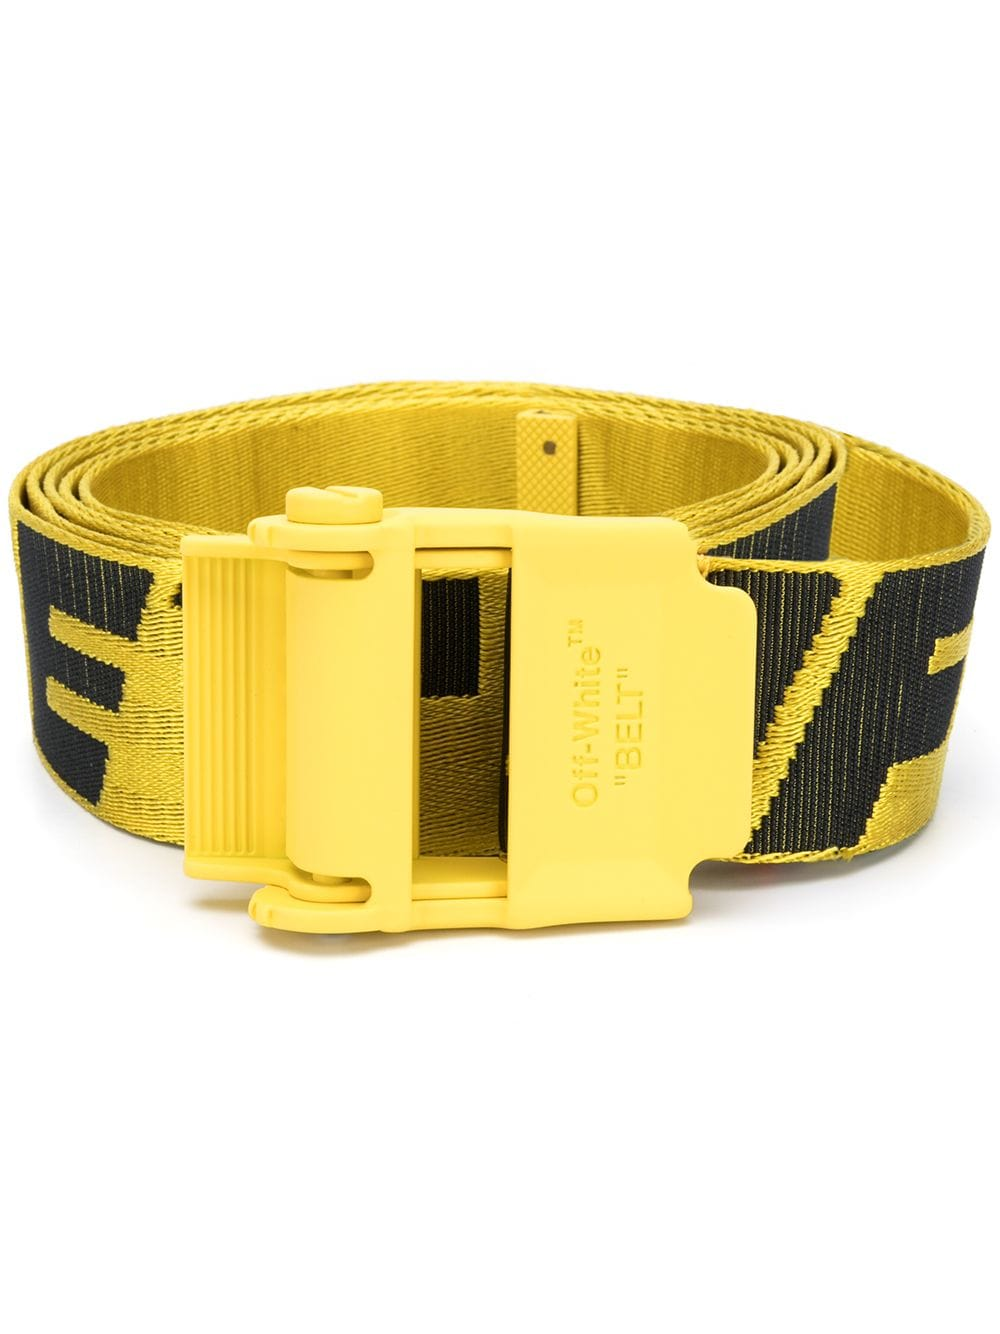 OFF WHITE MEN 2.0 INDUSTRIAL BELT